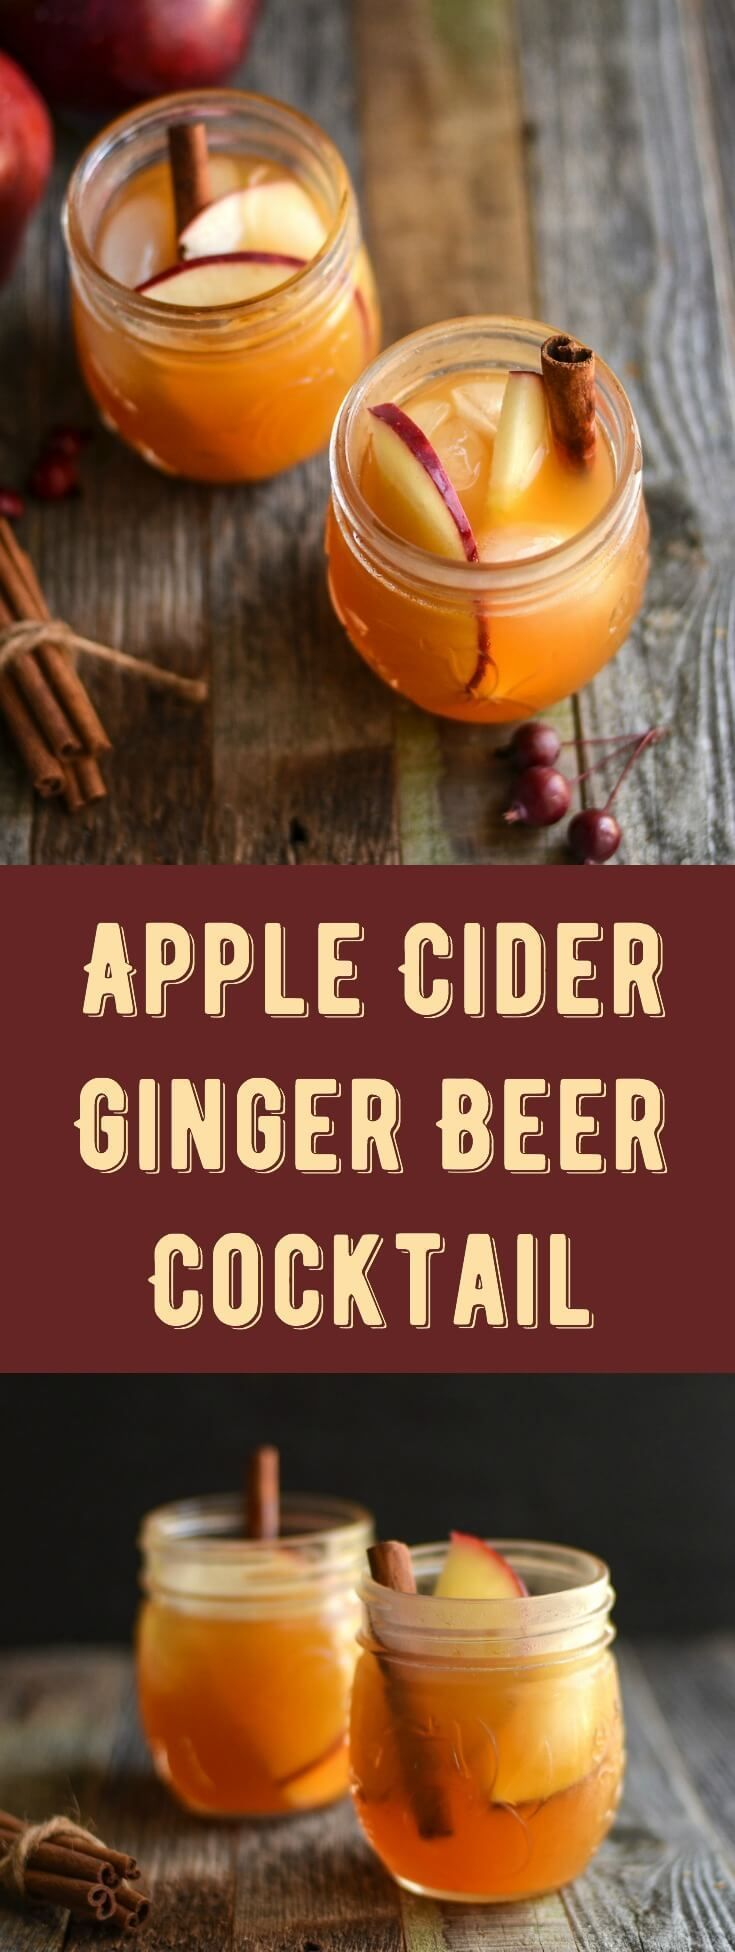 Refreshing Ginger Beer Cocktail with Apple Cider - DIY Candy